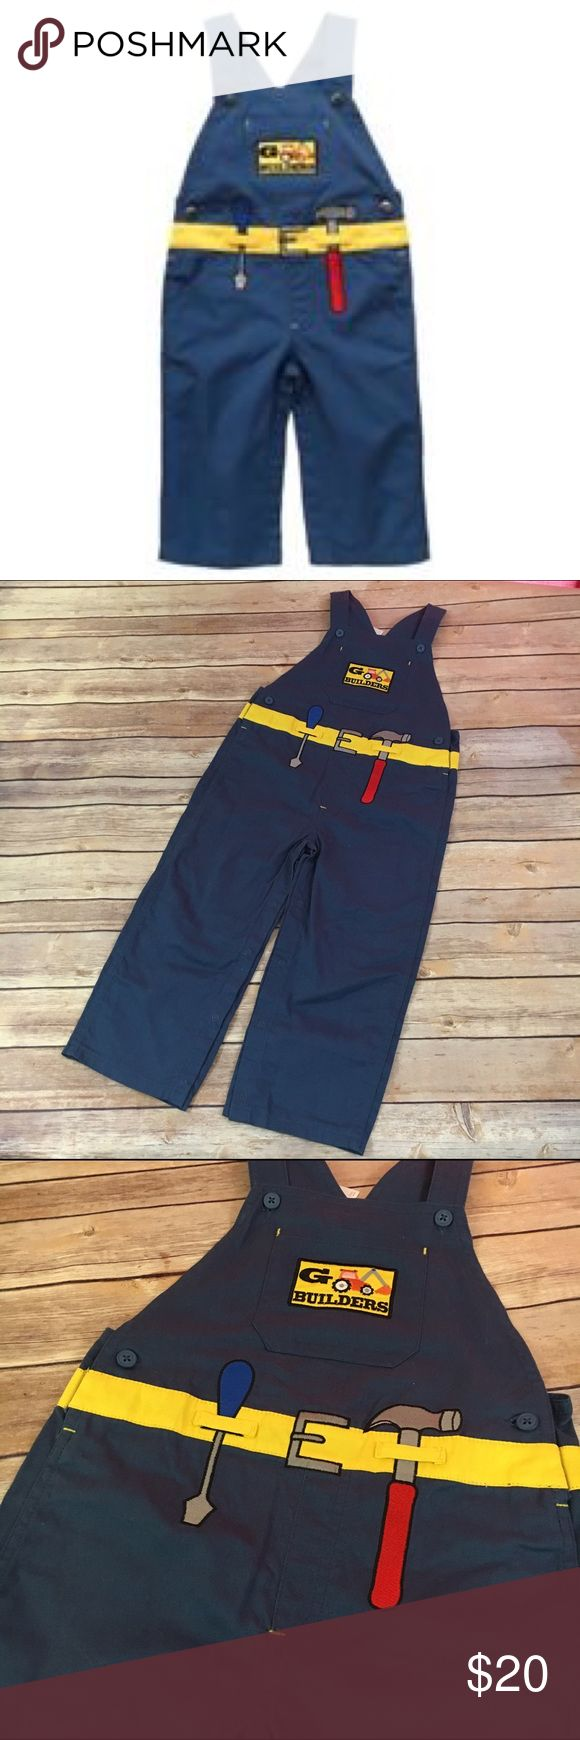 Gymboree G Builders Blue Overalls Costume 4T/5T Gymboree G Builders Blue Overalls Costume 4T/5T NEW NWT  Outlet line.  Could be good for a Bob the Builder costume or just any construction costume.  Snaps around stride, buttons at waist and straps.  #new #nwt #costume #overalls #construction #builder #bobthebuilder #blue #halloween #dressup #roleplay Gymboree Costumes